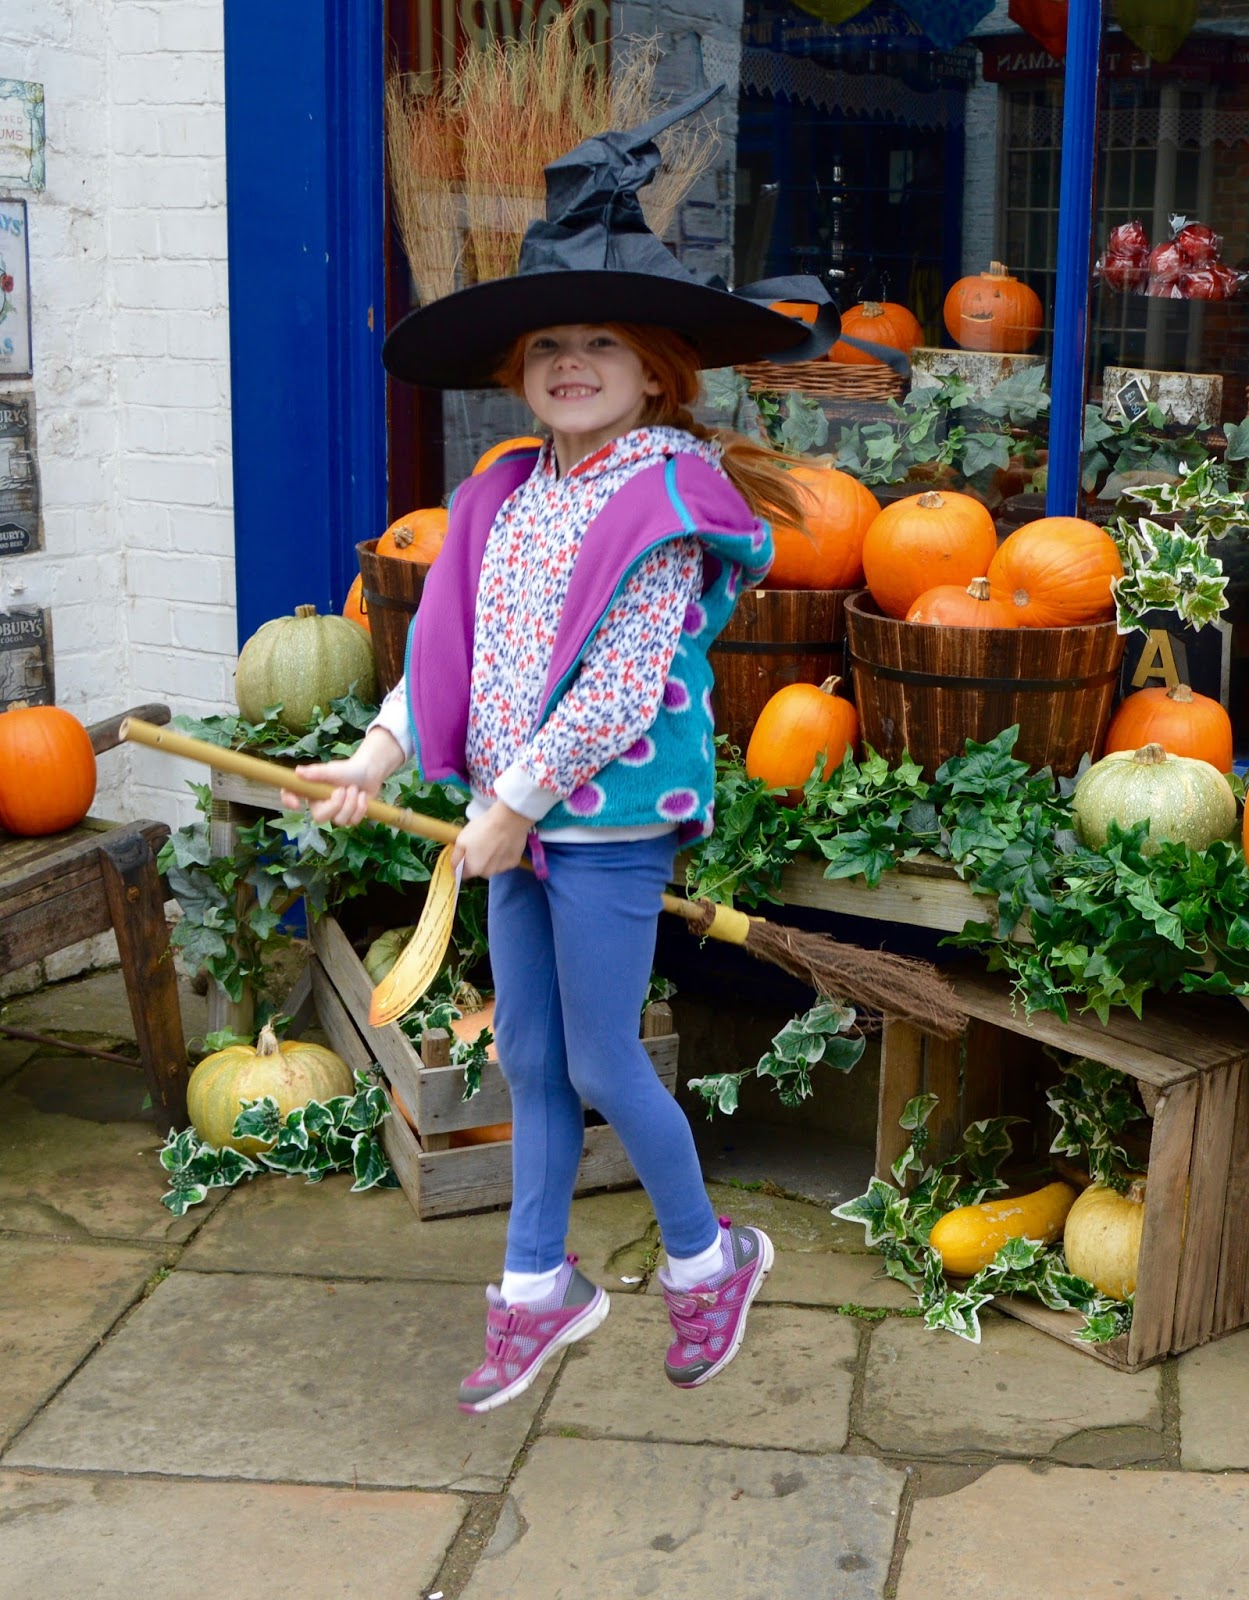 Half Term Hocus Pocus at Preston Park | The North East's very own Diagon Alley - broomstick flying